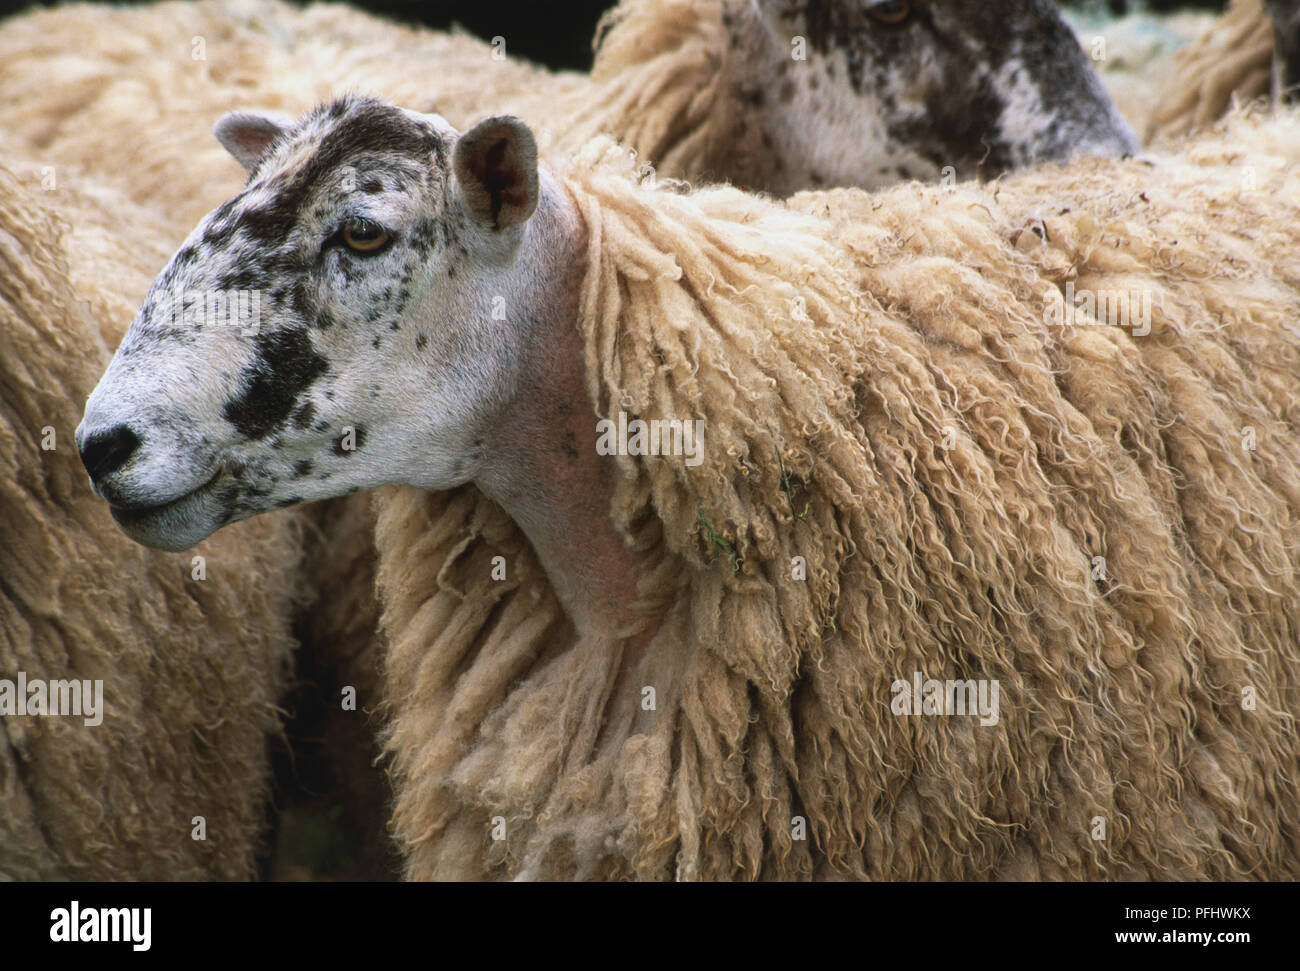 Sheep with black and white head among its herd, side view - Stock Image